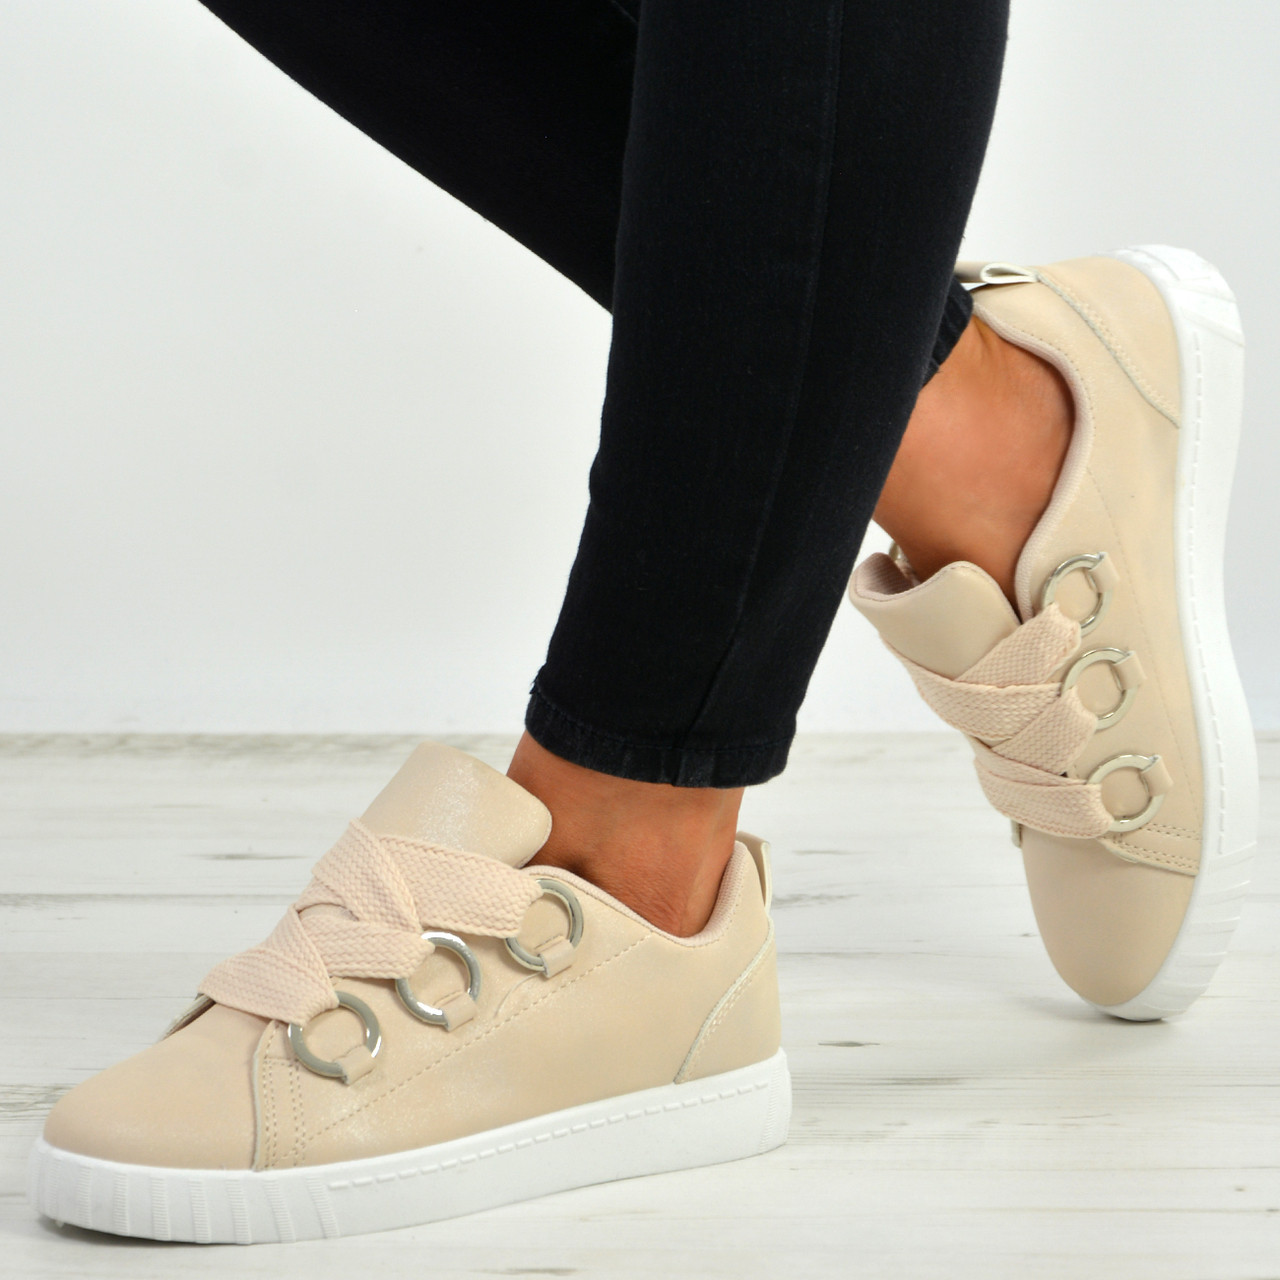 NEW Mujer LACE FLATS CHUNKY SOLE ZIP LACE Mujer UP TRAINERS FASHION PLIMSOLLS zapatos Talla 6294e8